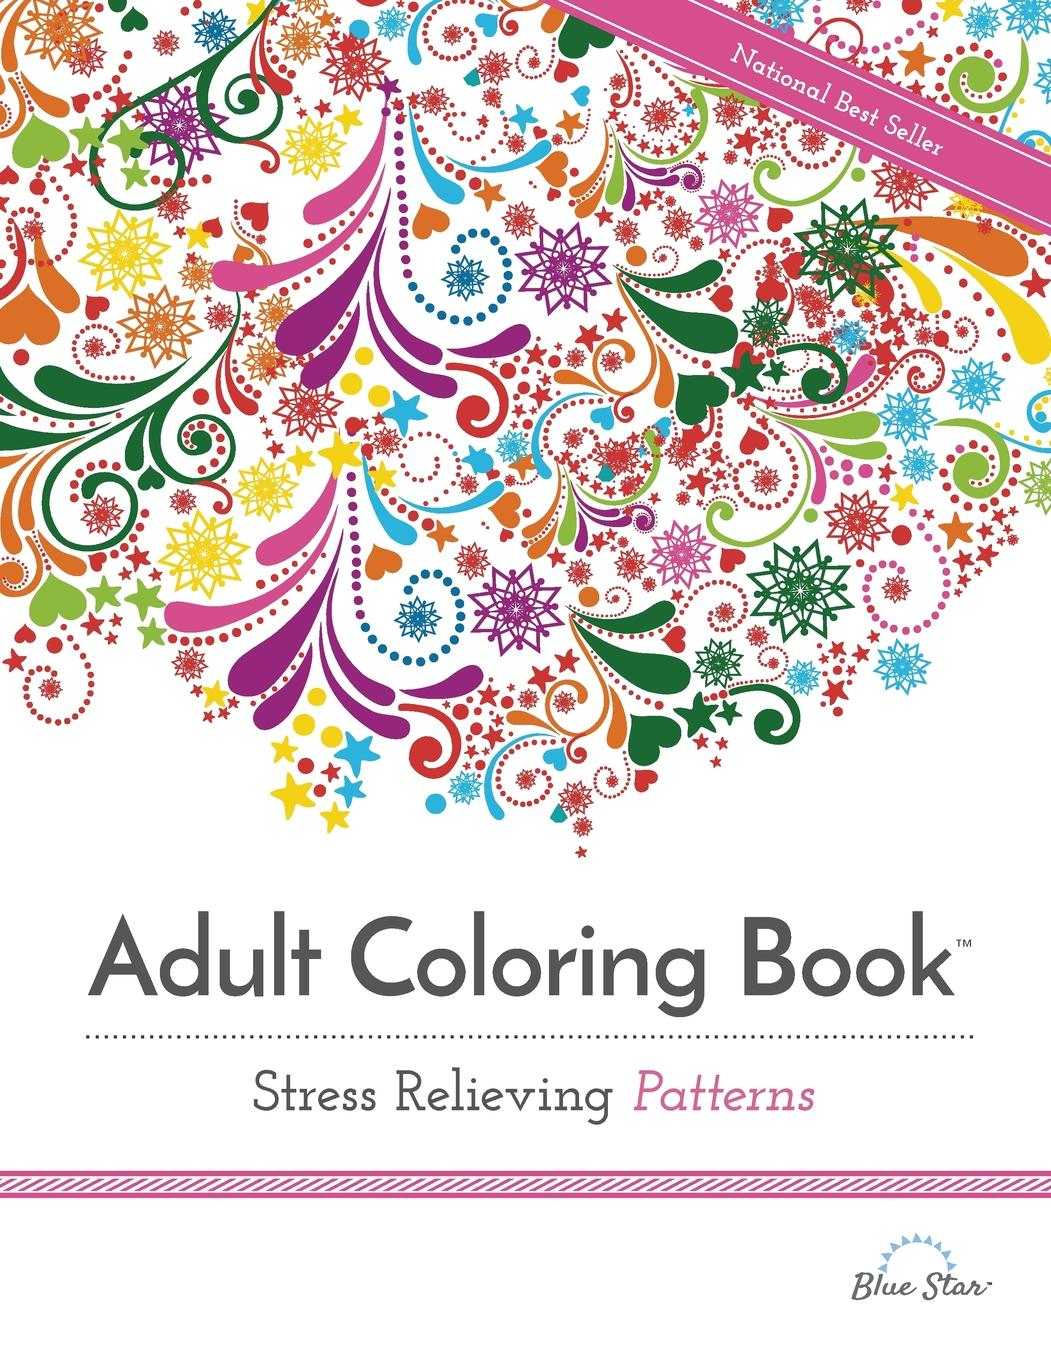 adult coloring book stress relieving patterns (paperback)